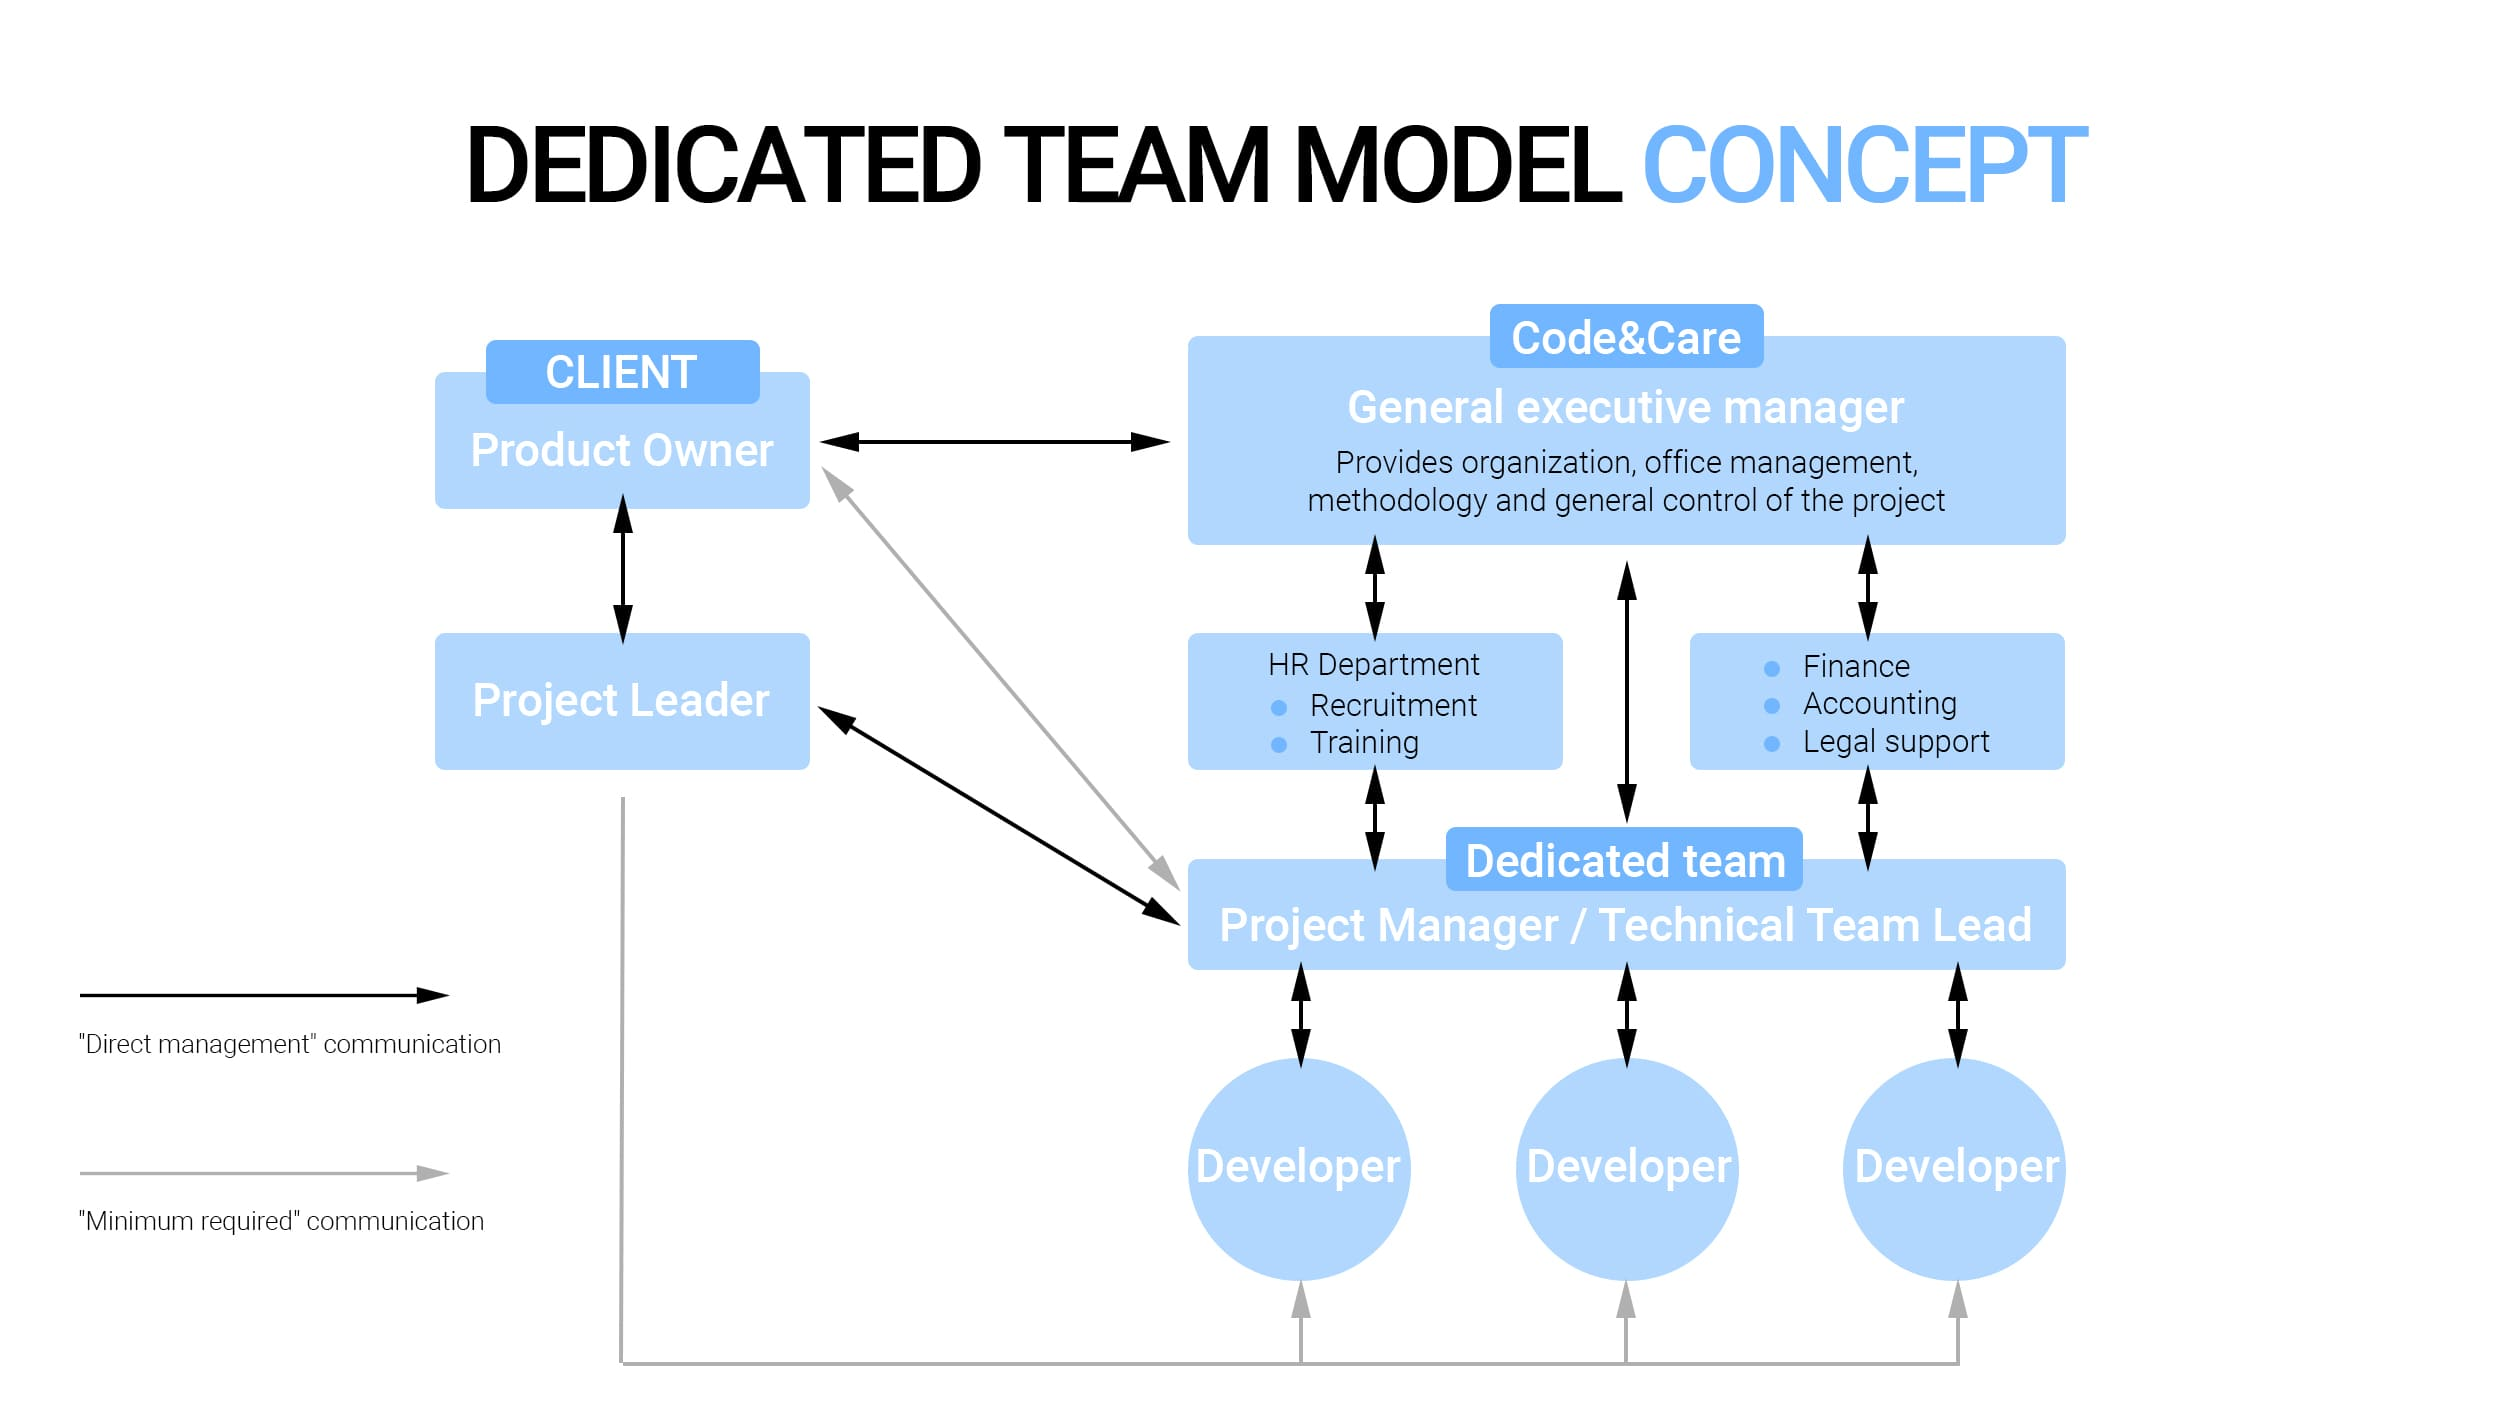 Dedicated team model concept